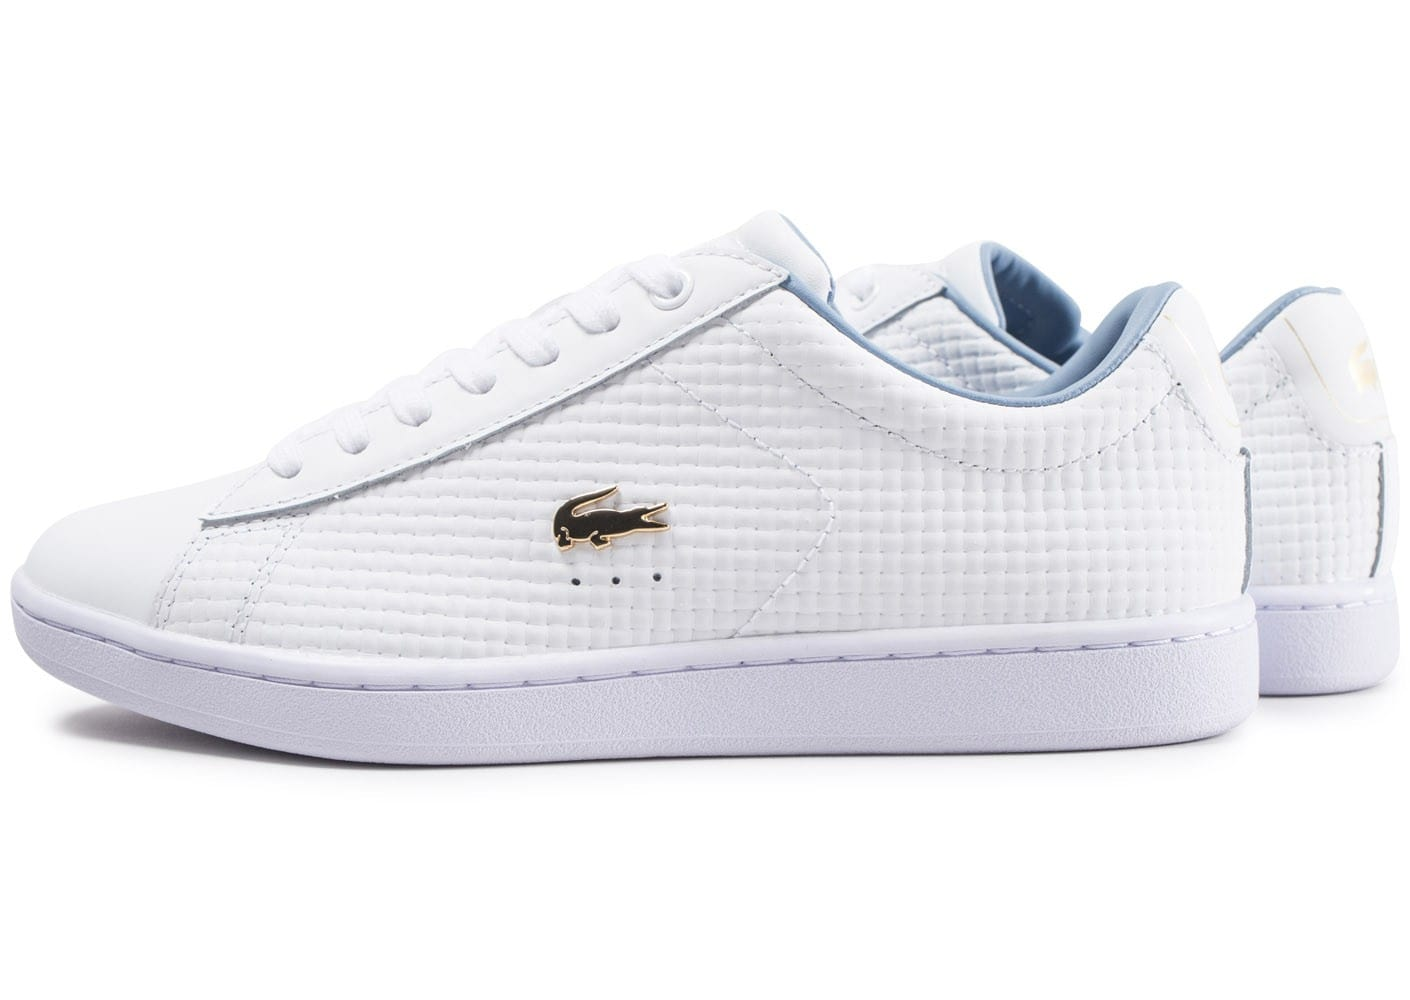 Chaussures Lacoste Carnaby Pointure 25 blanches Casual xwsRU